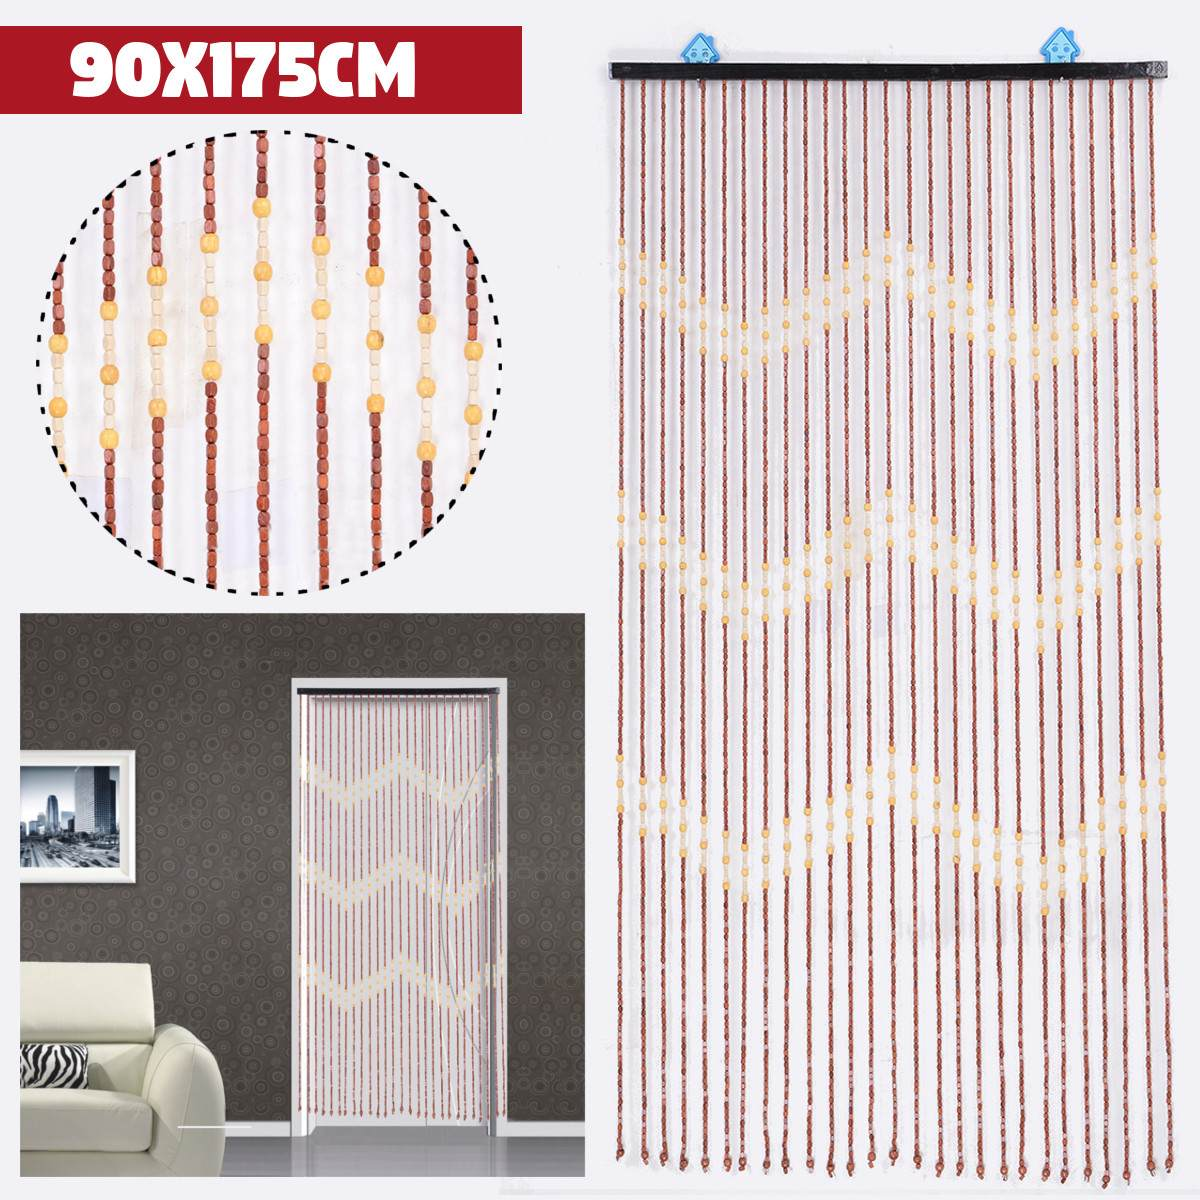 90x175cm 27 Line Wave Wooden Beads Curtain Handmade Fly Screen Wooden Door Curtain Blinds For Porch Bedroom Living Room Divider